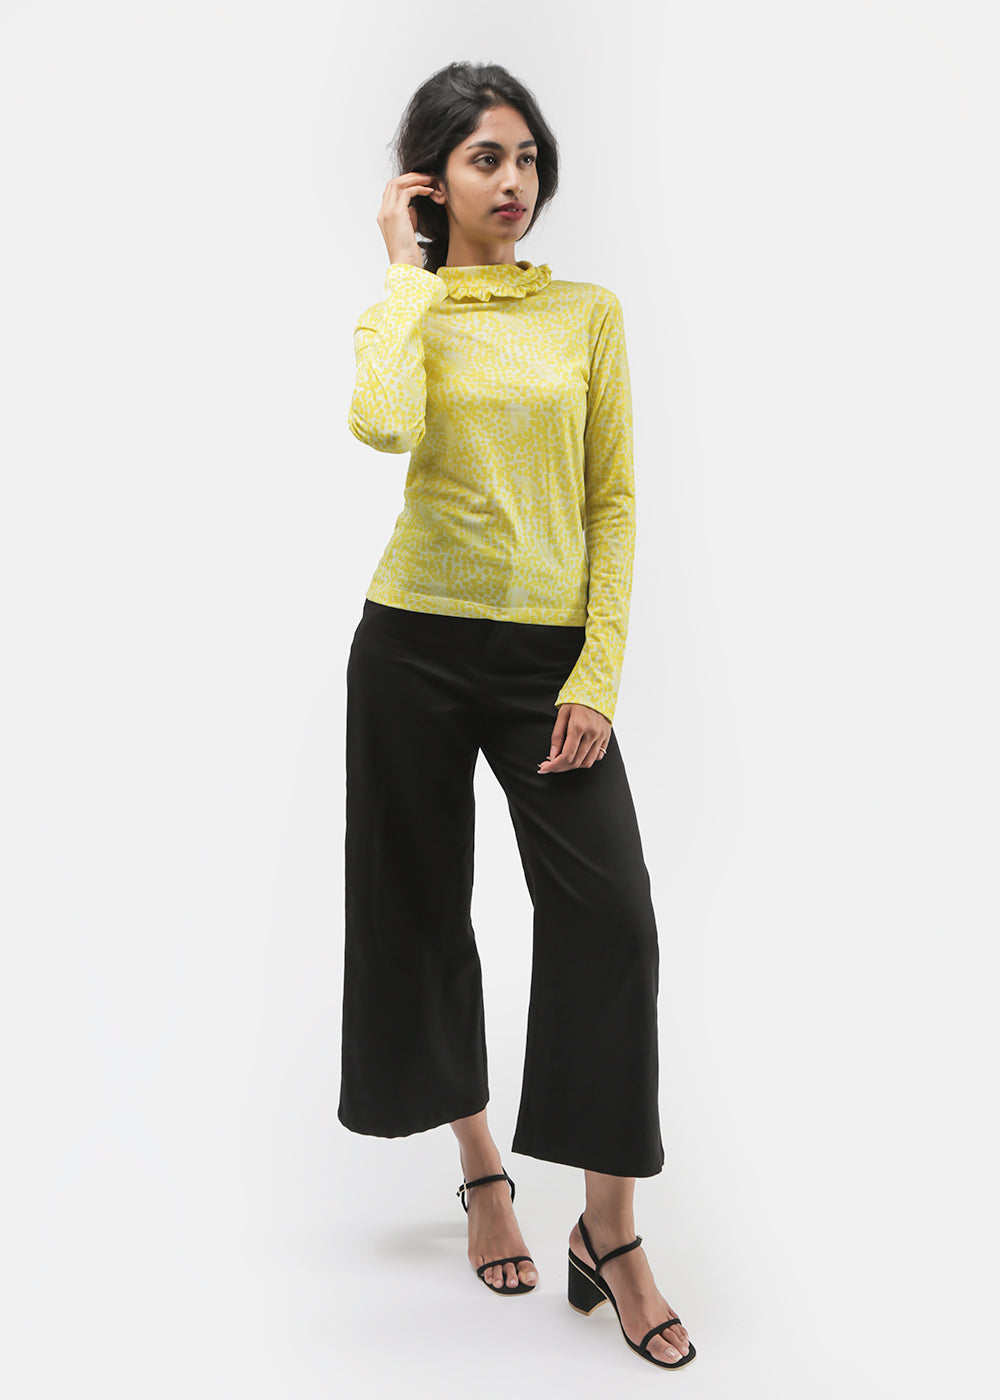 Mirador Pitter Patter Skivvy — Shop sustainable fashion and slow fashion at New Classics Studios